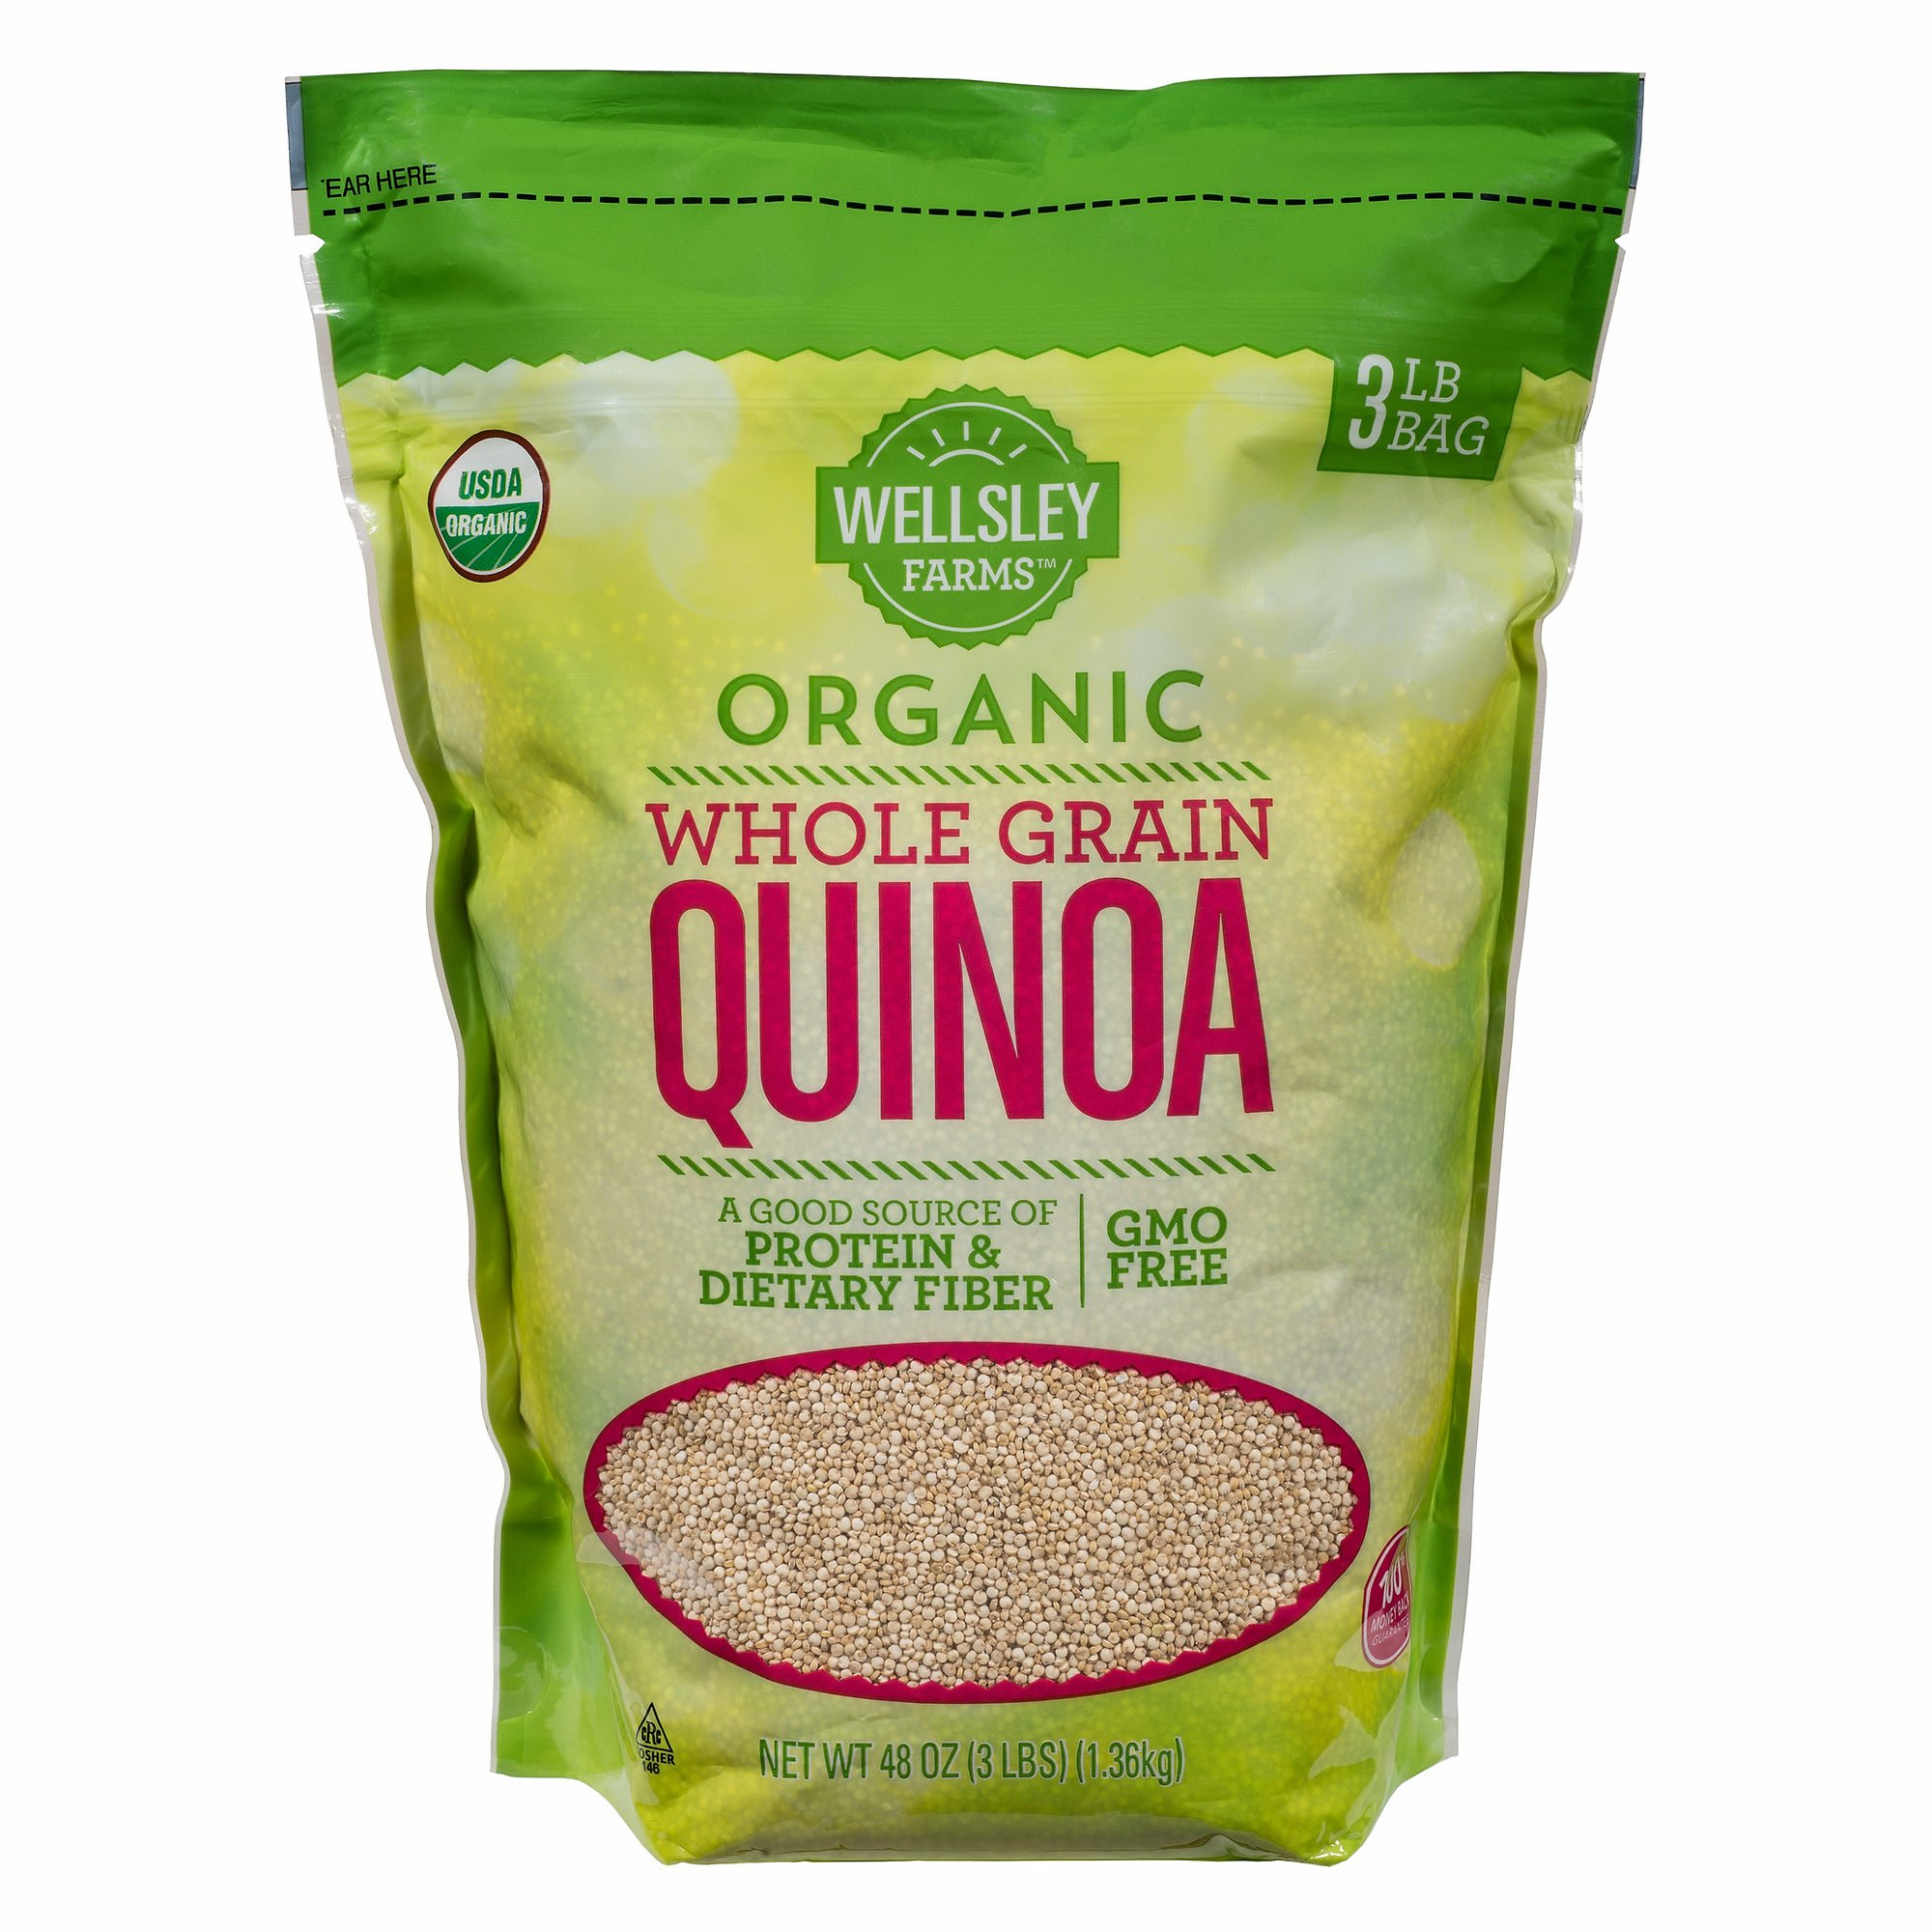 Wellsley Farms Organic Whole Grain Quinoa, 2 lbs. (pack of 2) by Wellsley Farms